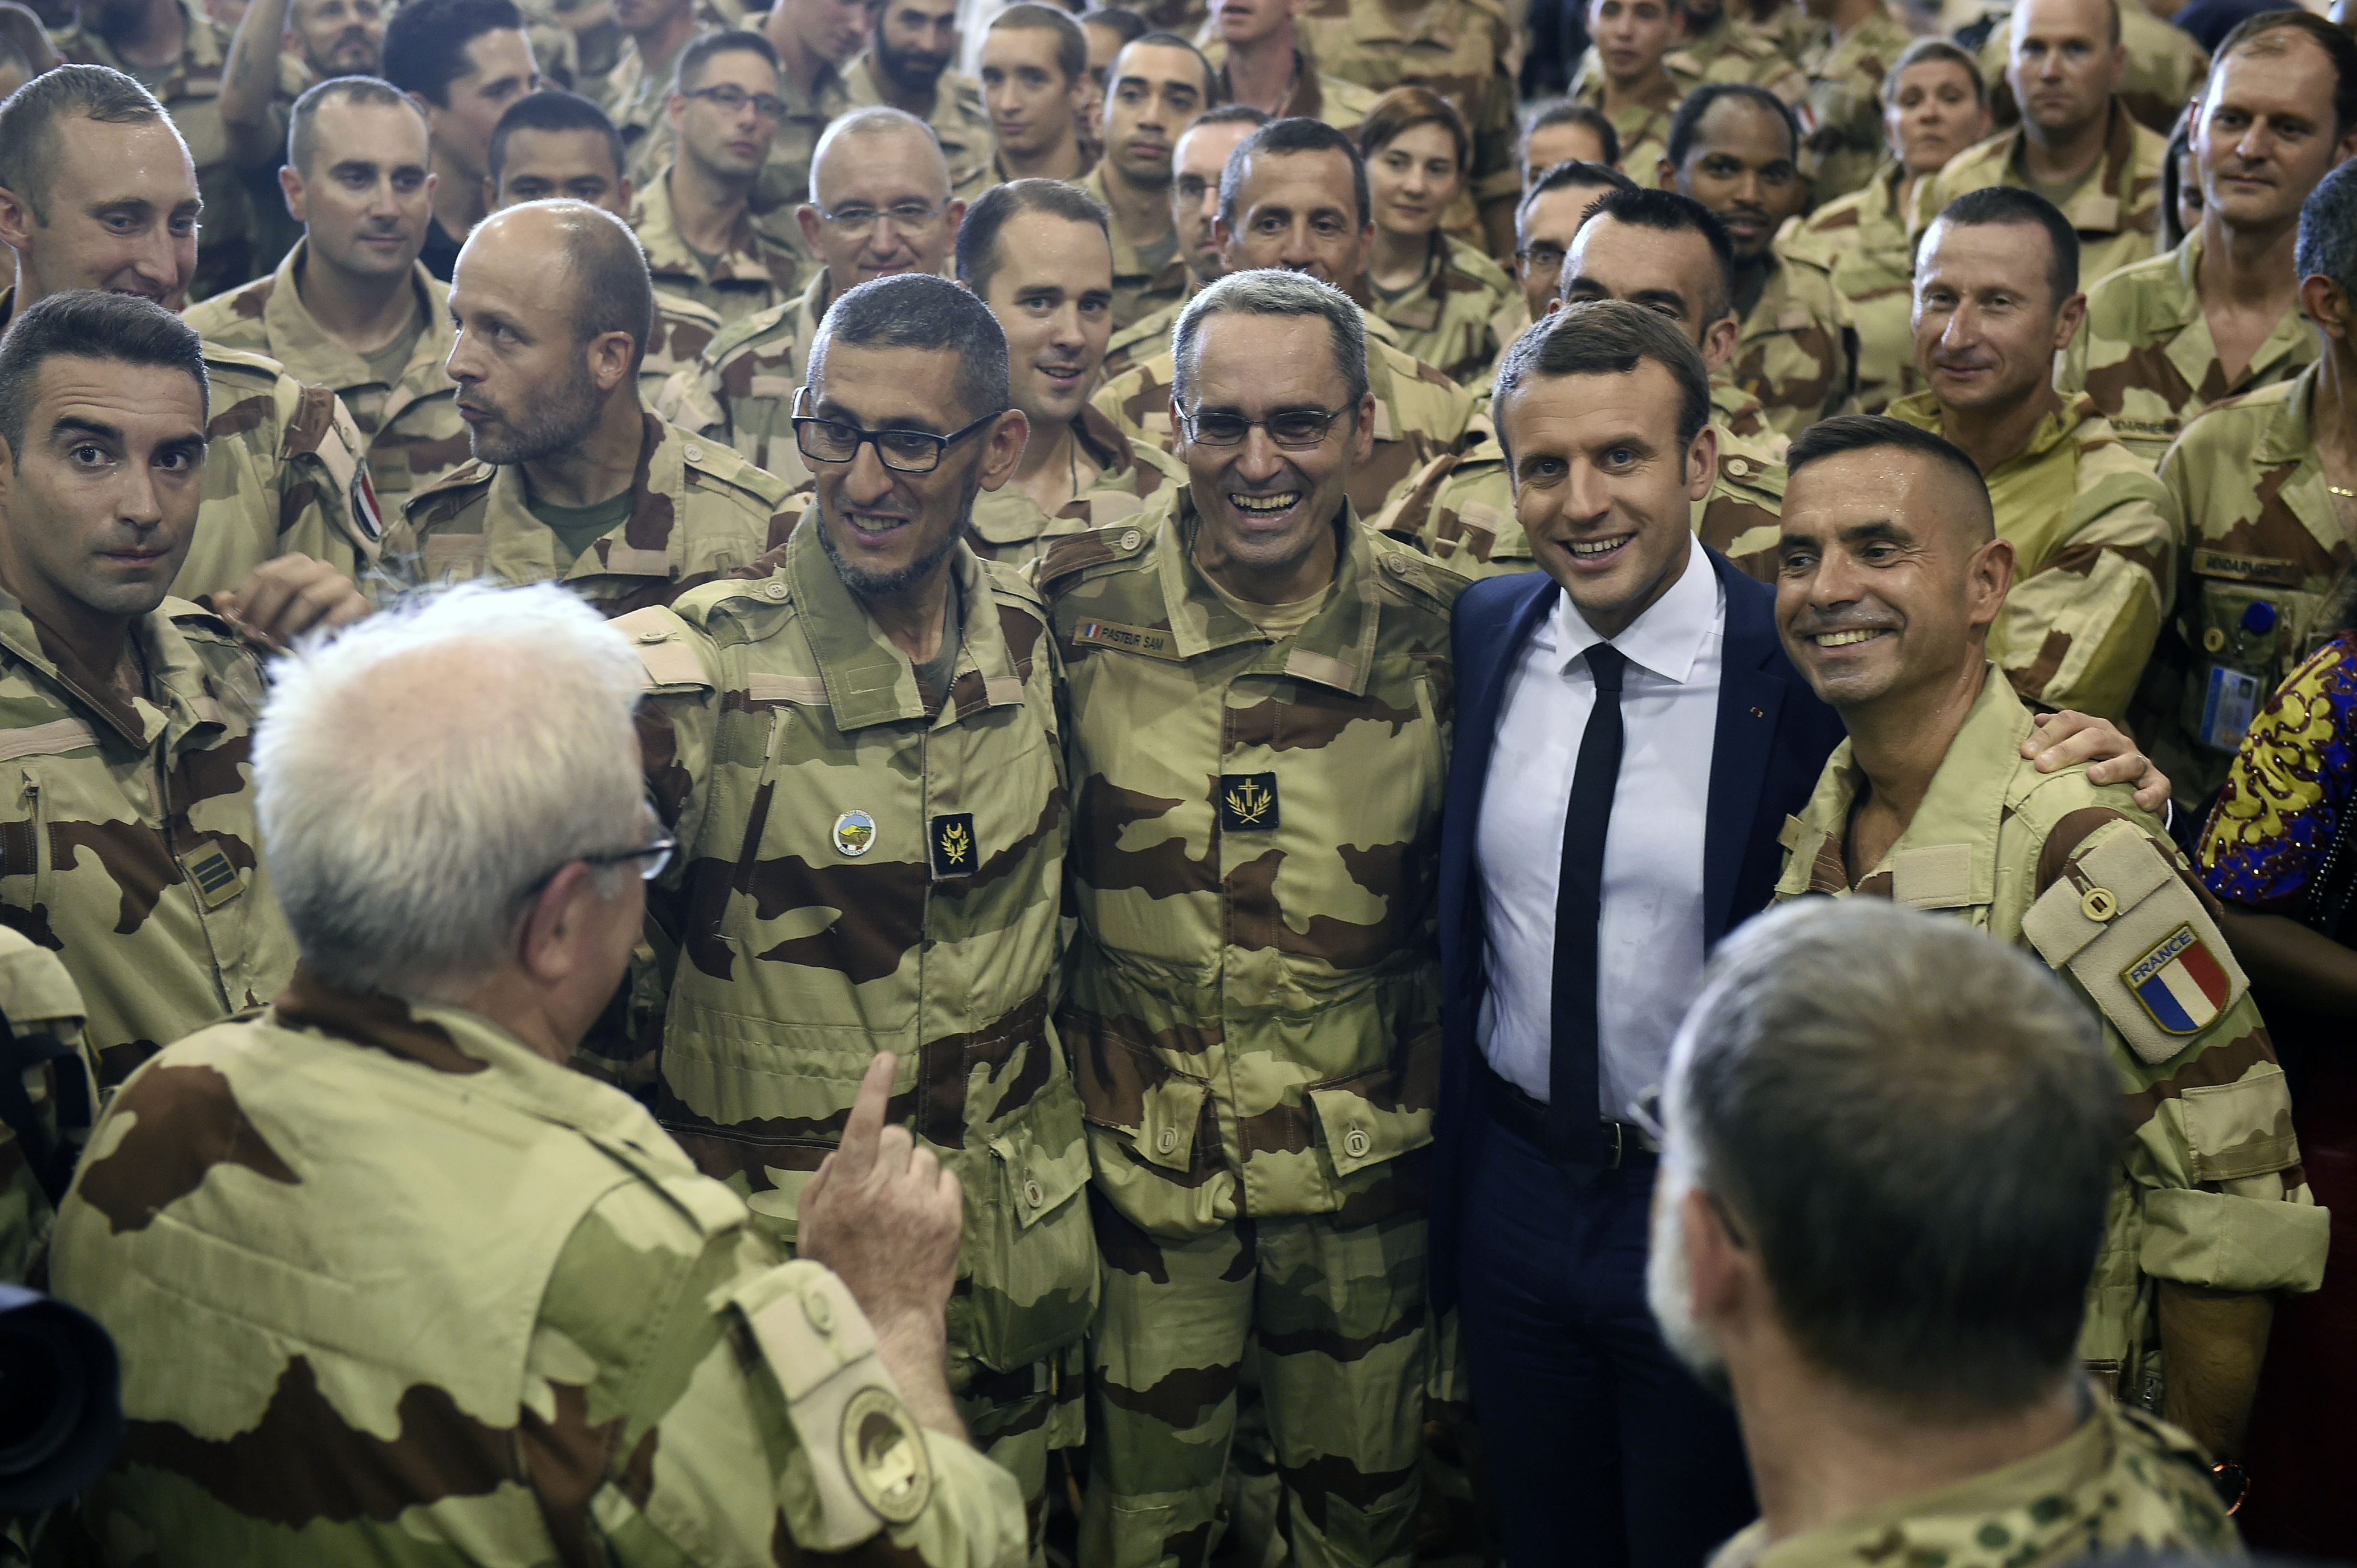 UN and African Union Key to Public Support for French Military Operations in Africa